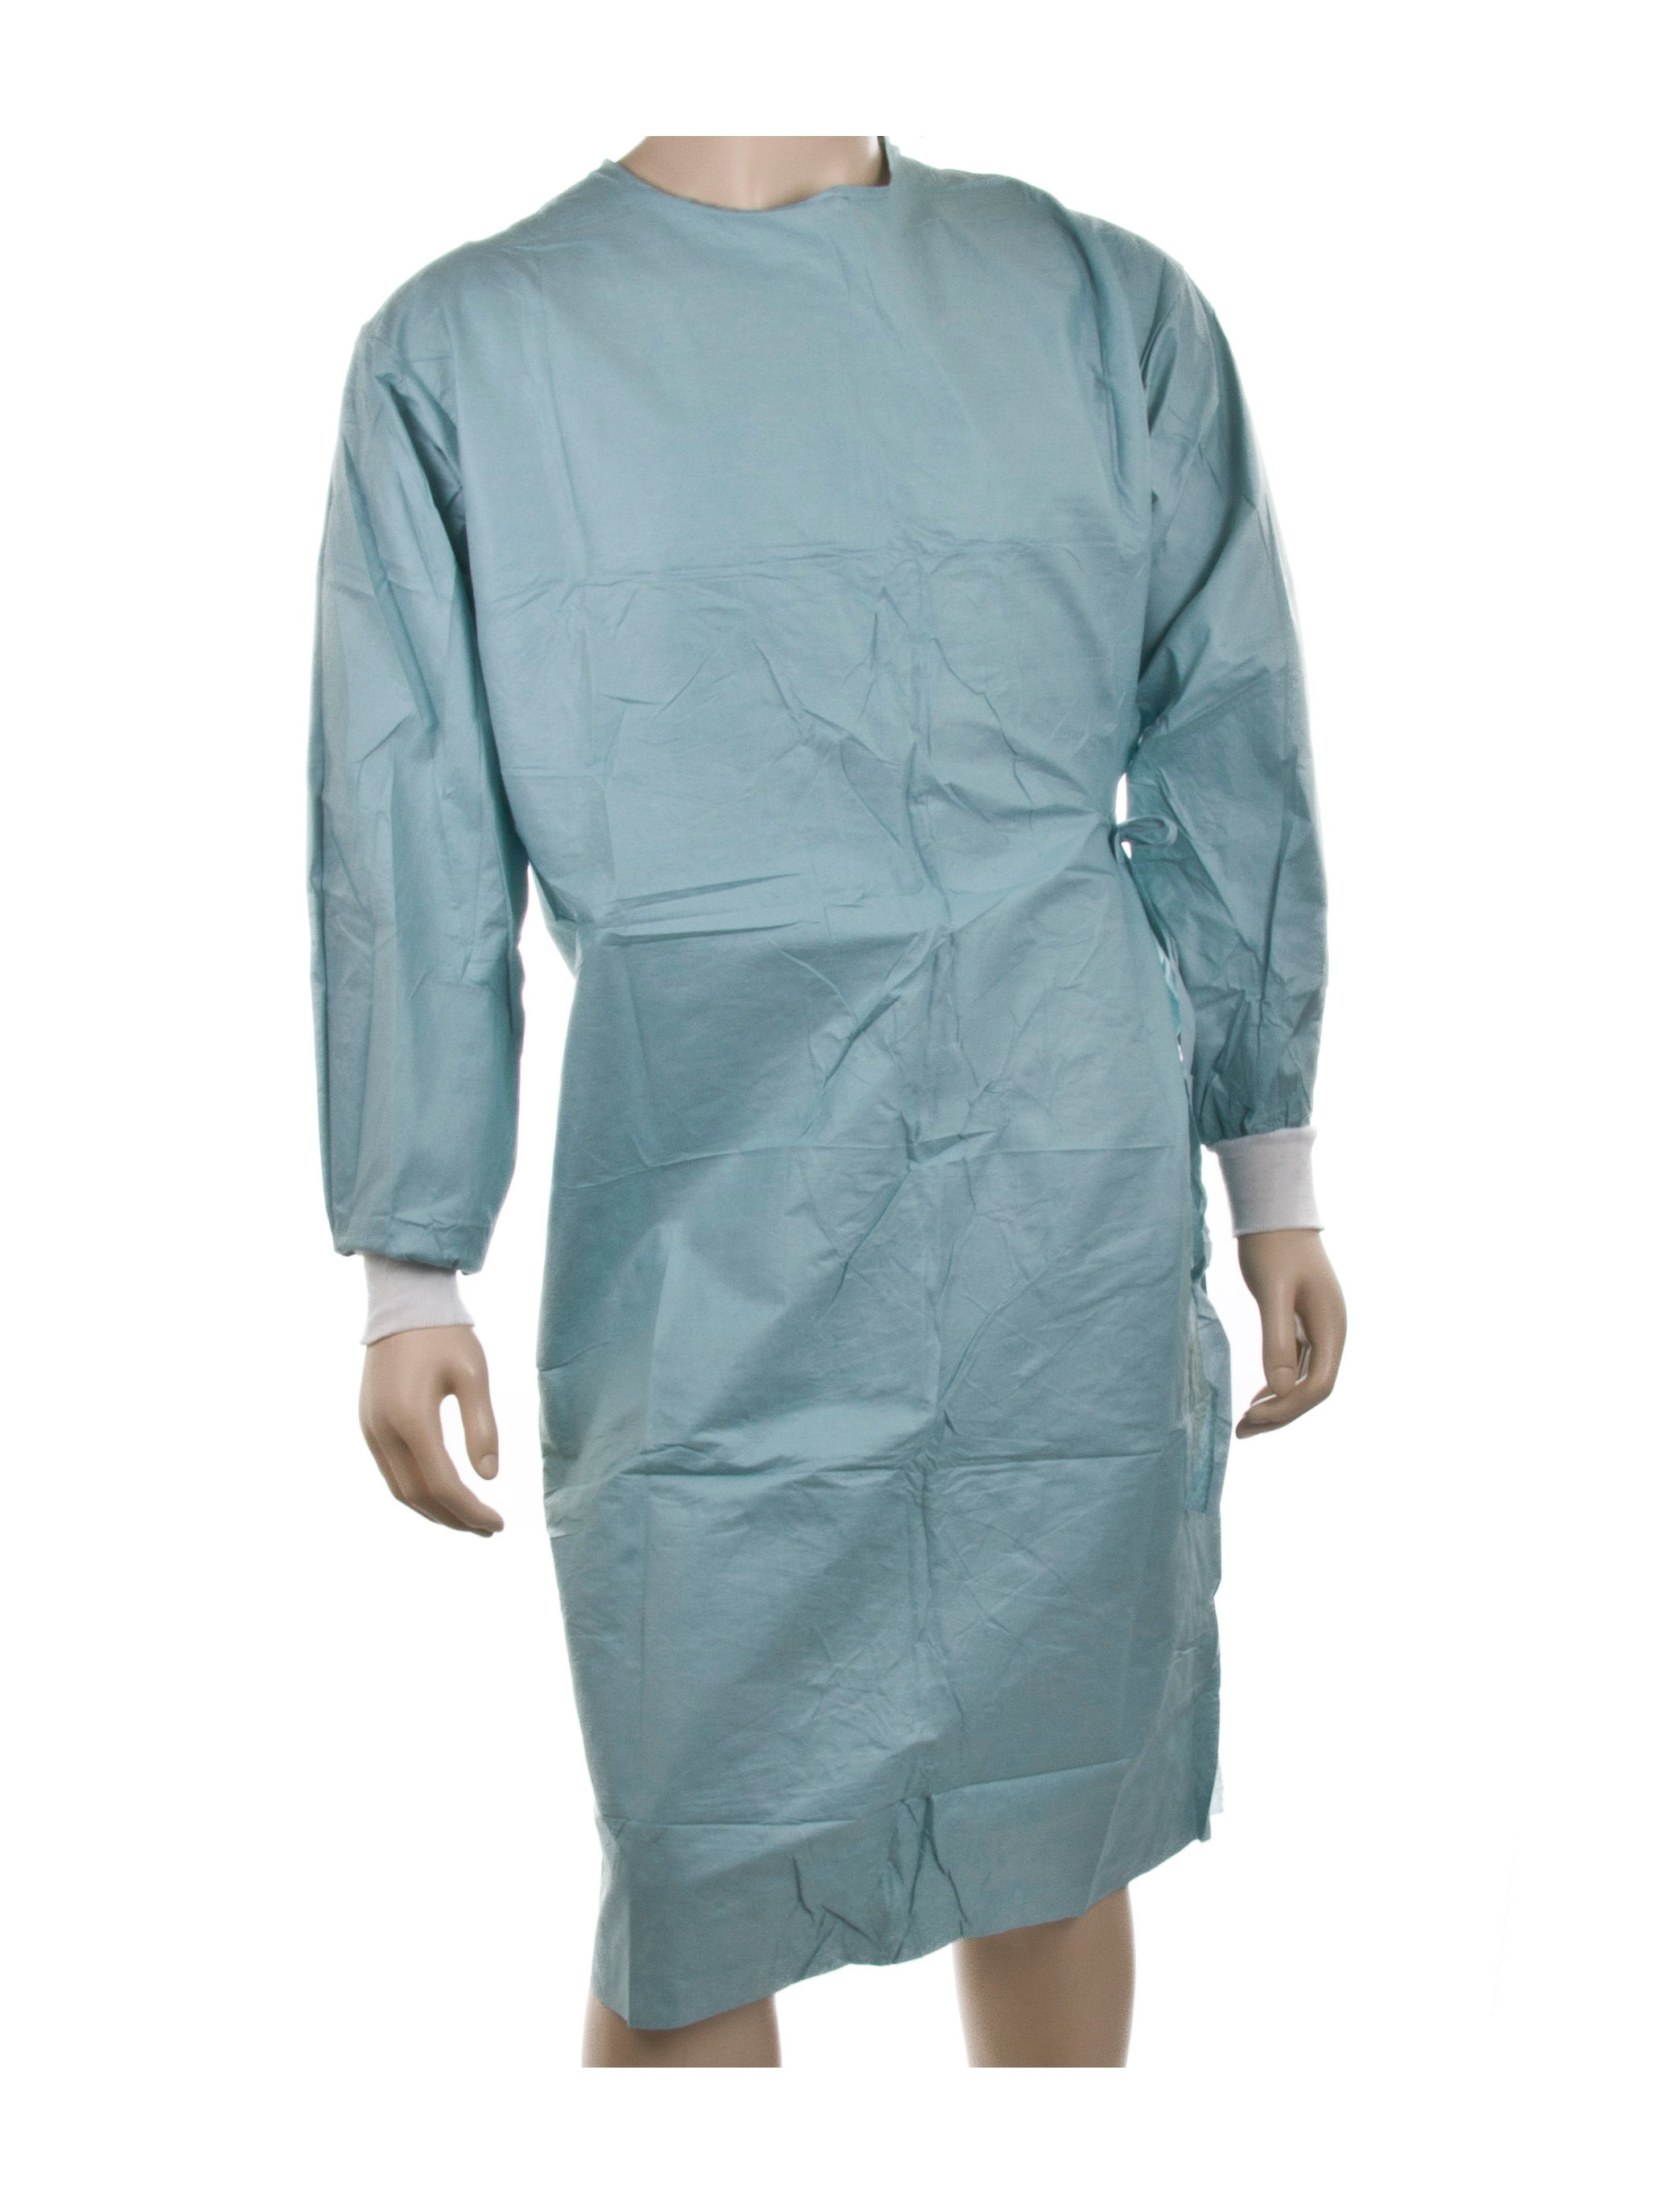 Sterile Surgeons Gown Large